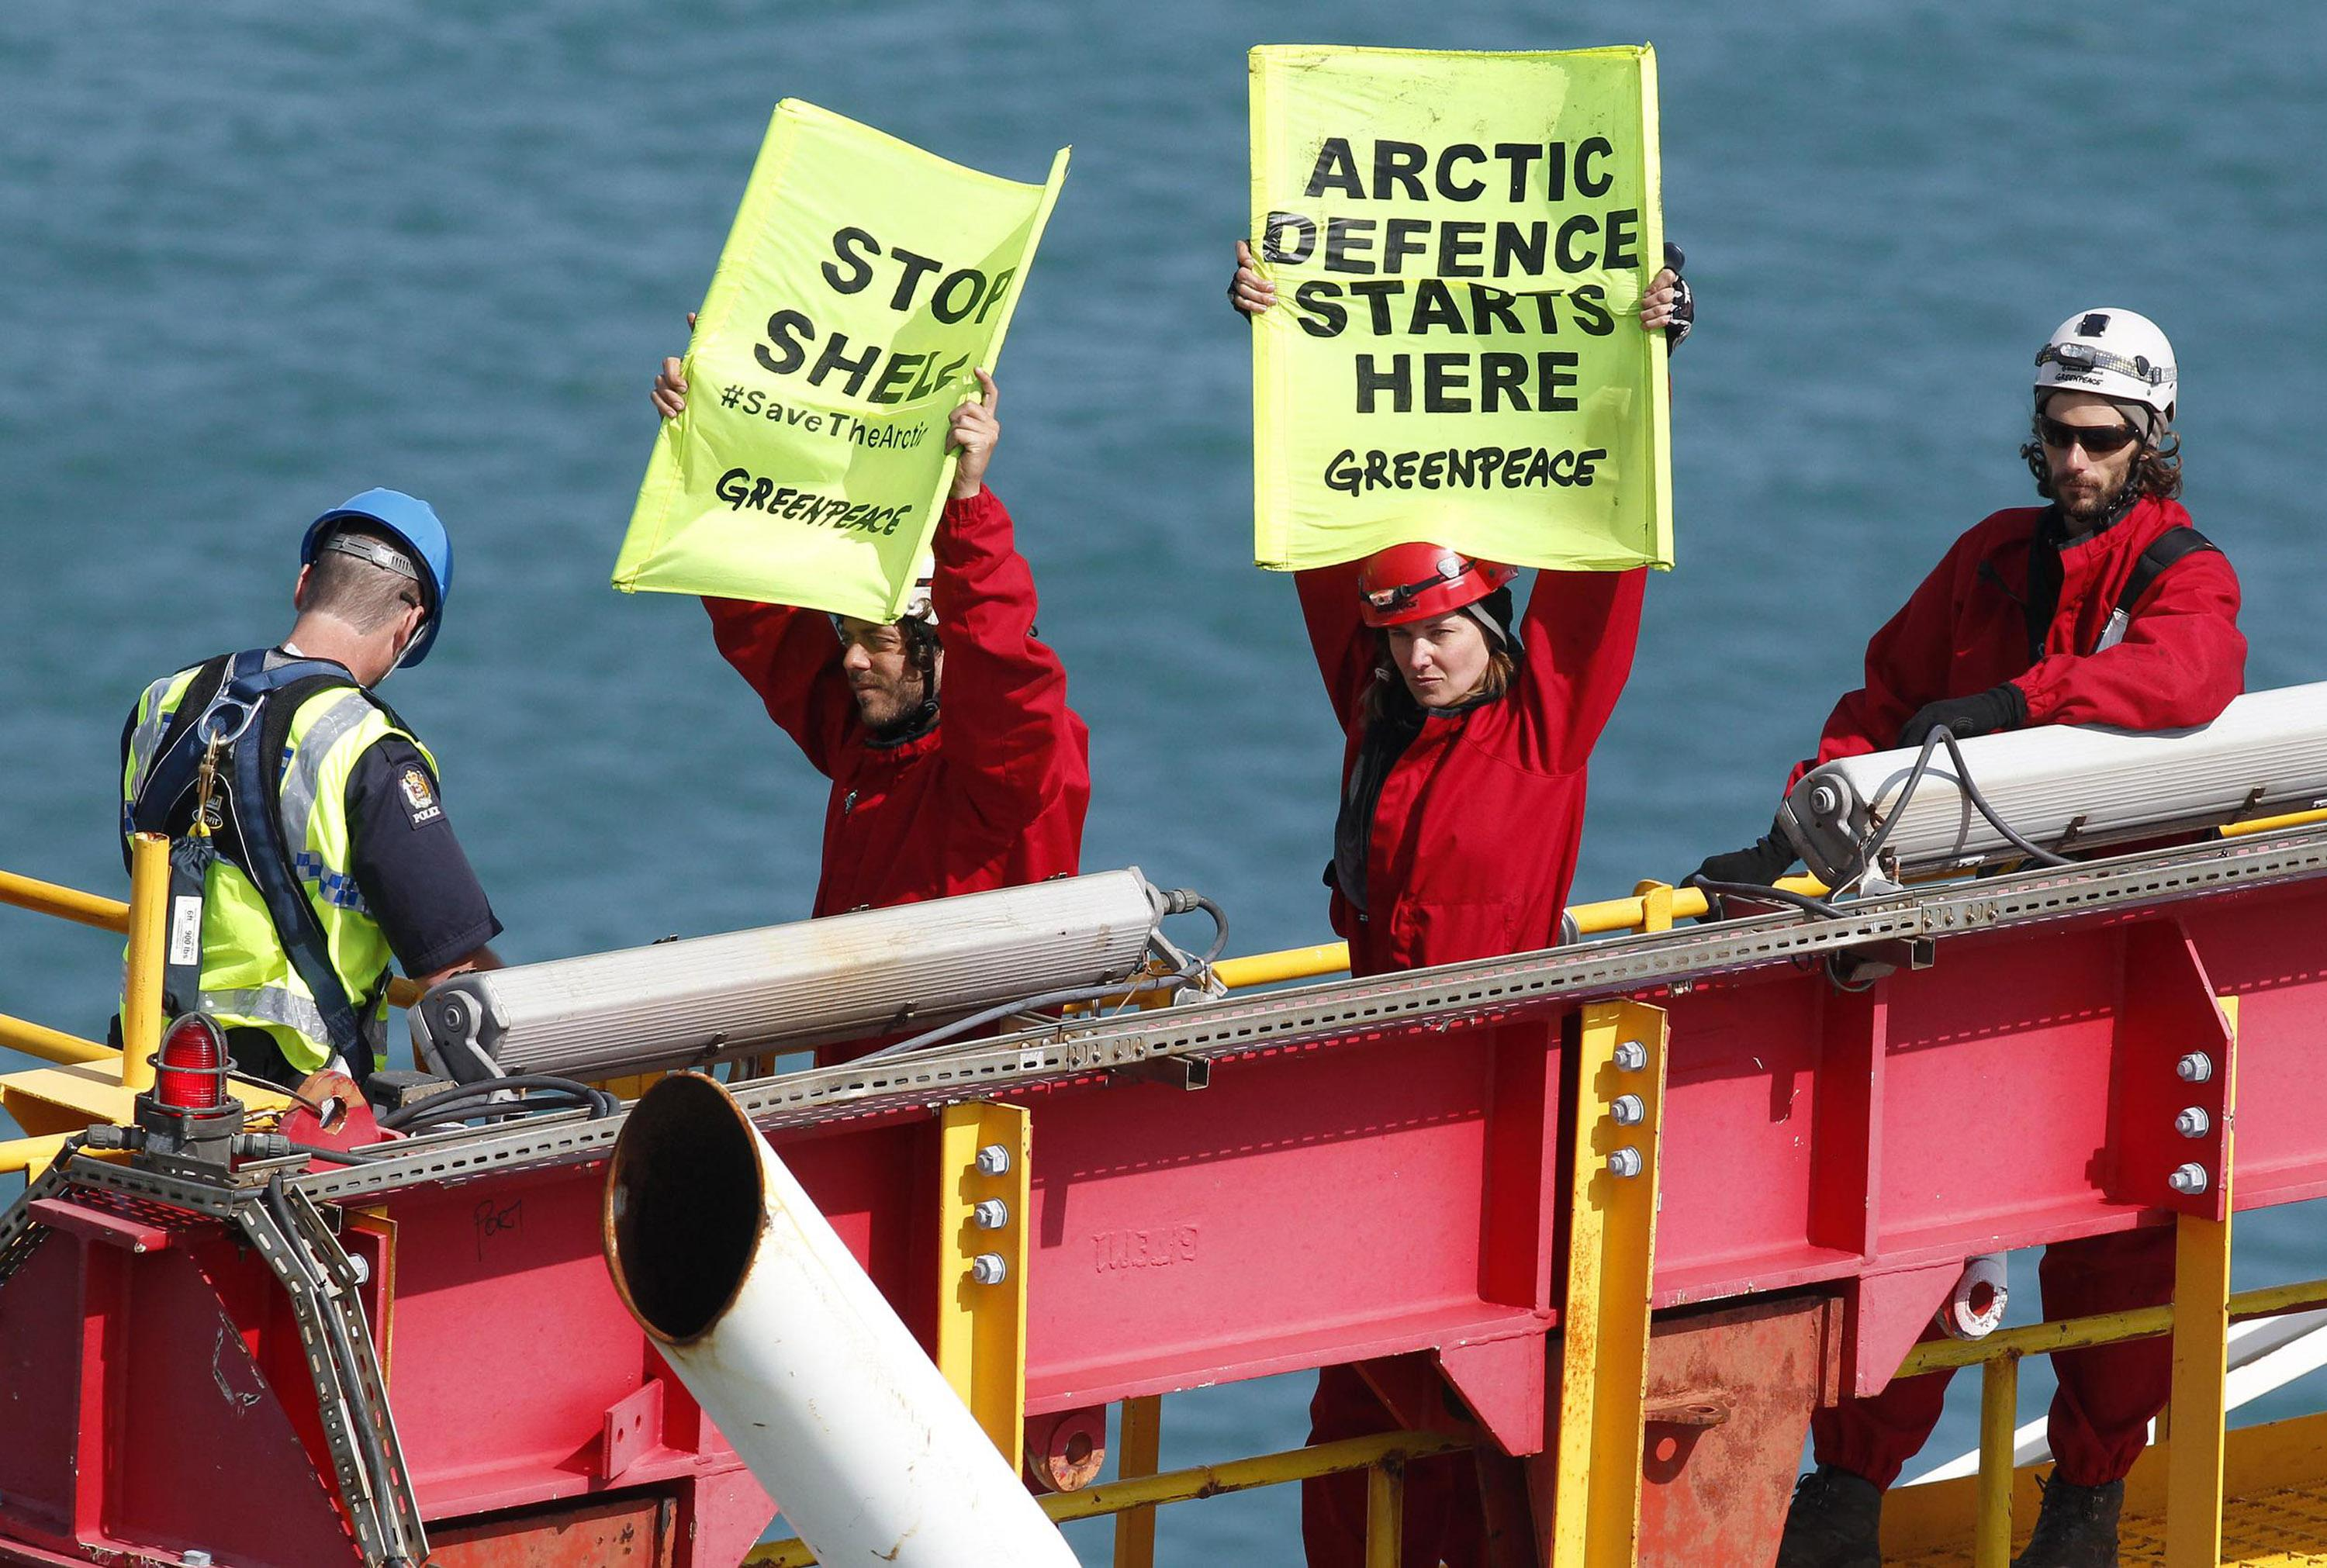 In this photo released by Greenpeace, actress Lucy Lawless and five Greenpeace activists are arrested by police atop a 174-foot (53-meter) drilling tower on the Noble Discoverer in Port Taranaki, New Zealand, on Monday, Feb. 27, 2012. Police on Monday arrested Lawless and the activists after the group spent four days protesting aboard the oil-drilling ship docked in New Zealand. (AP Photo/Greenpeace, Nigel Marple) NO SALES, NO ARCHIVES, EDITORIAL USE ONLY, MANDATORY CREDIT